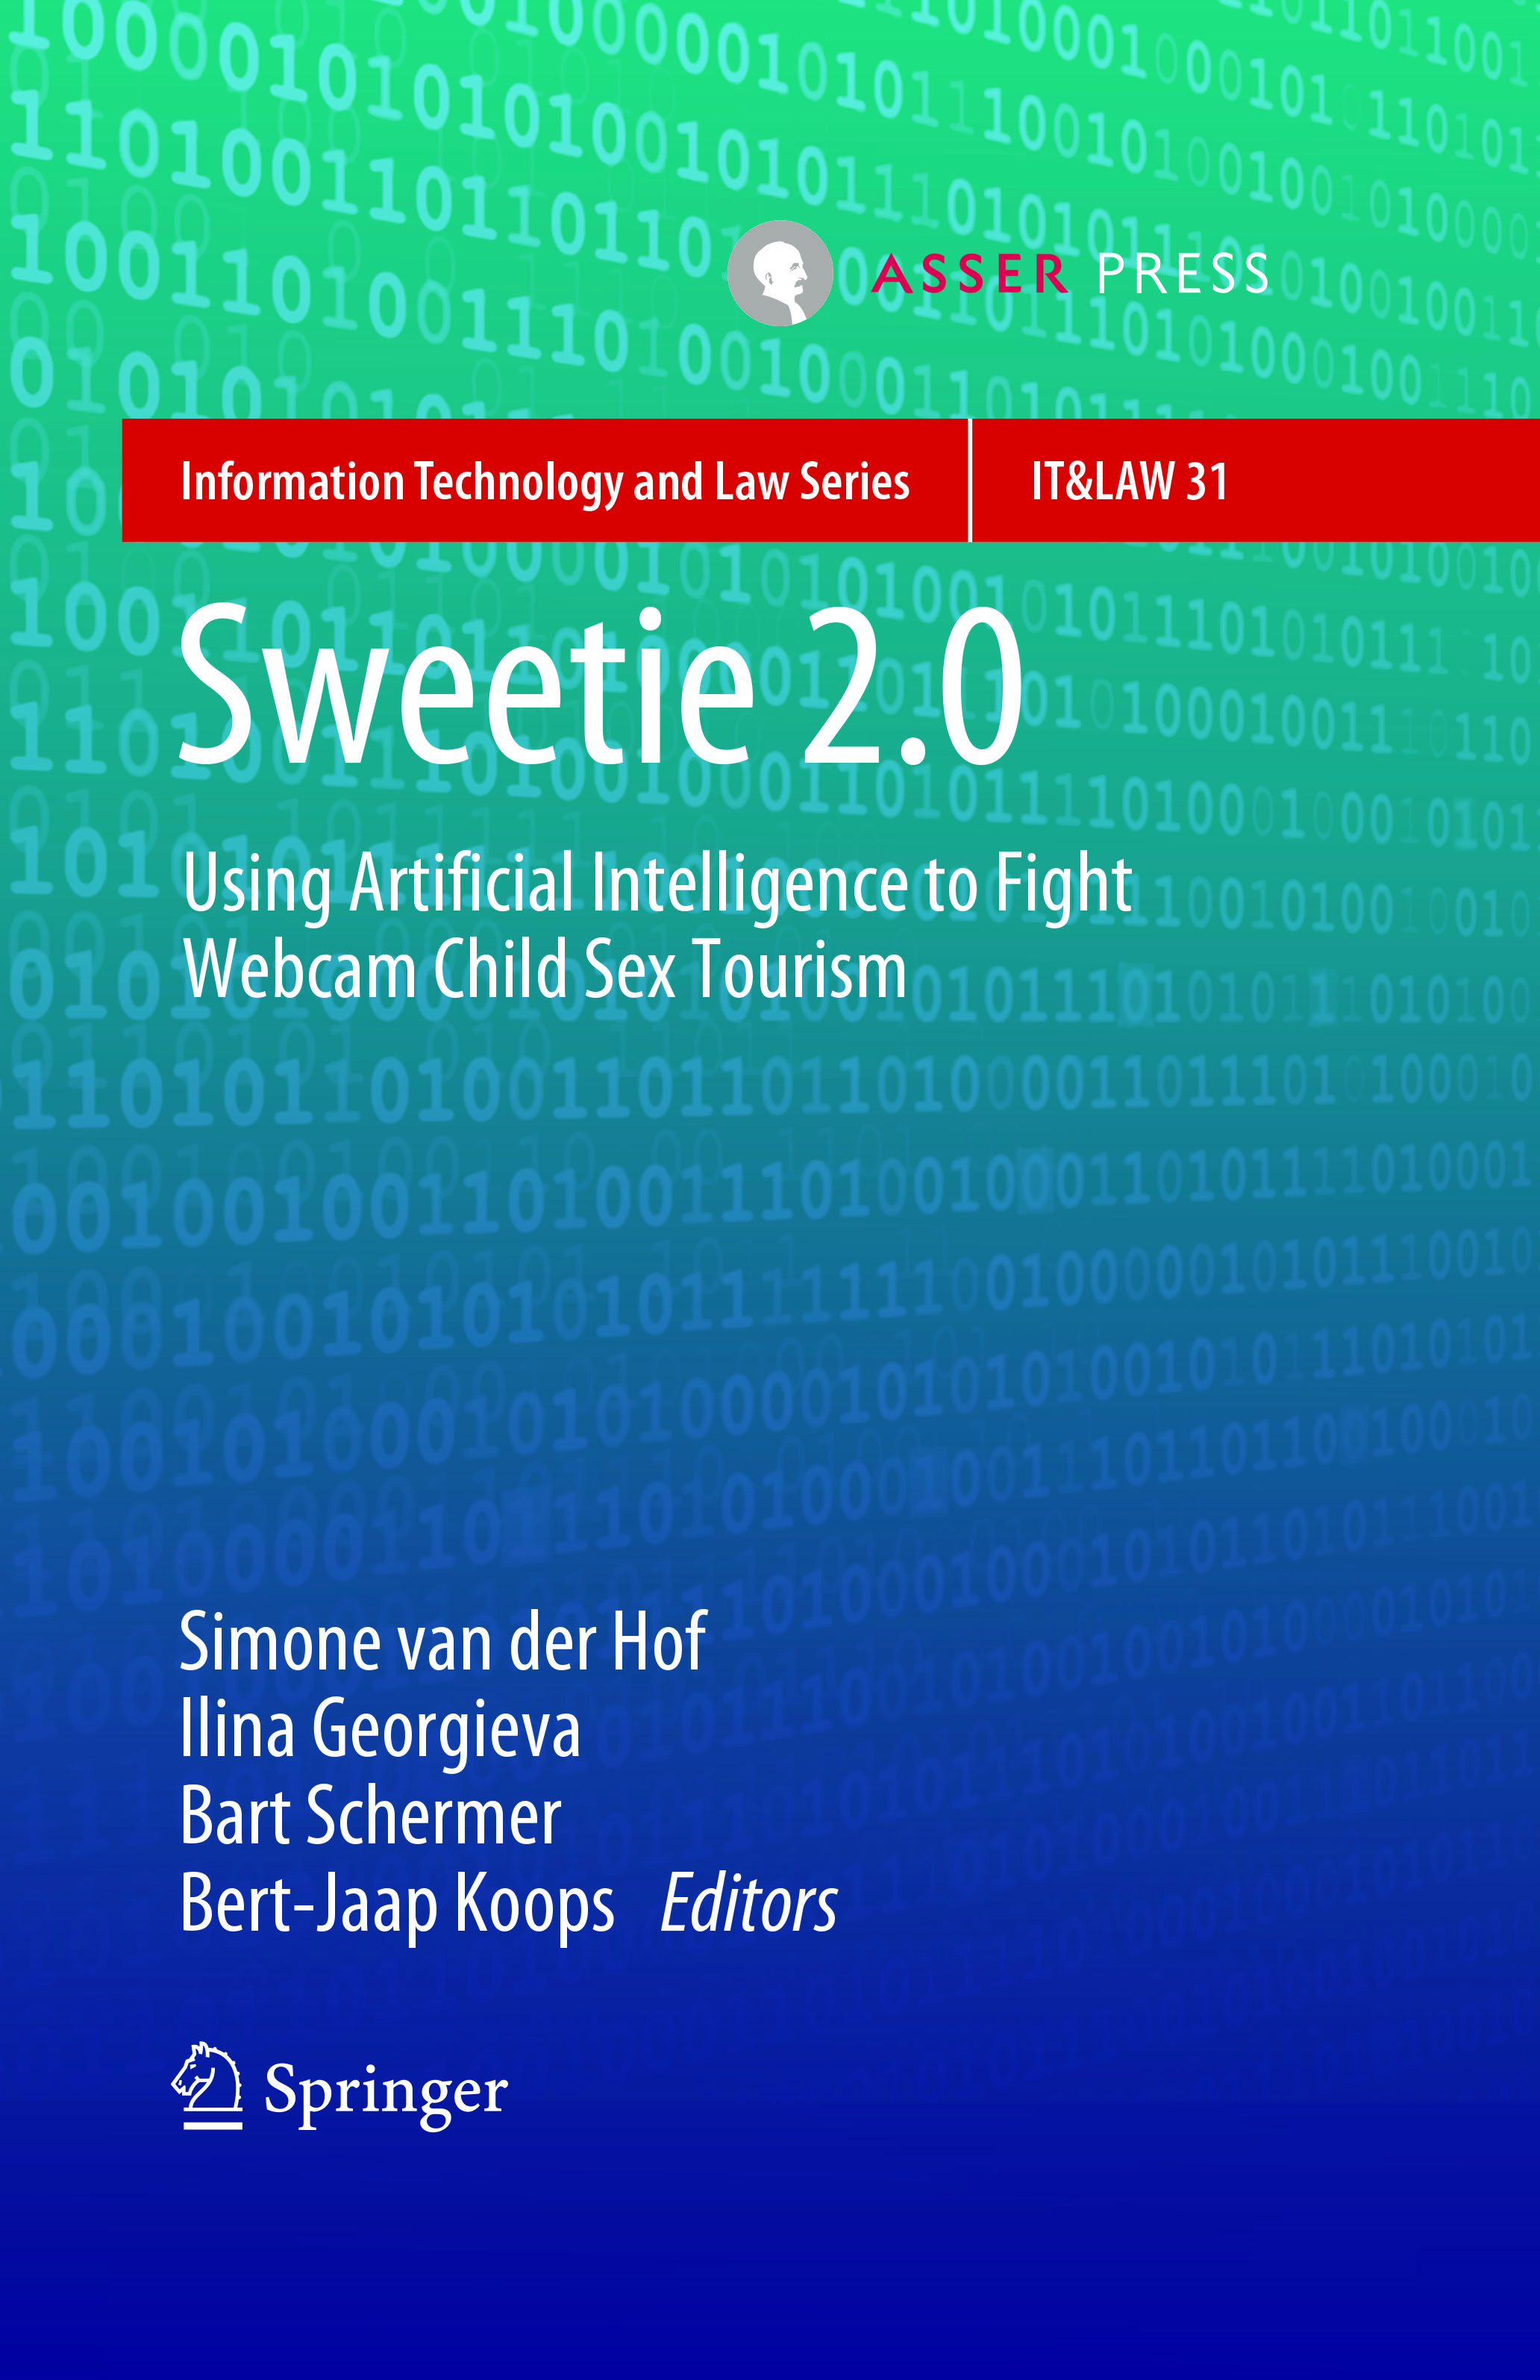 Sweetie 2.0 - Using Artificial Intelligence to Fight Webcam Child Sex Tourism